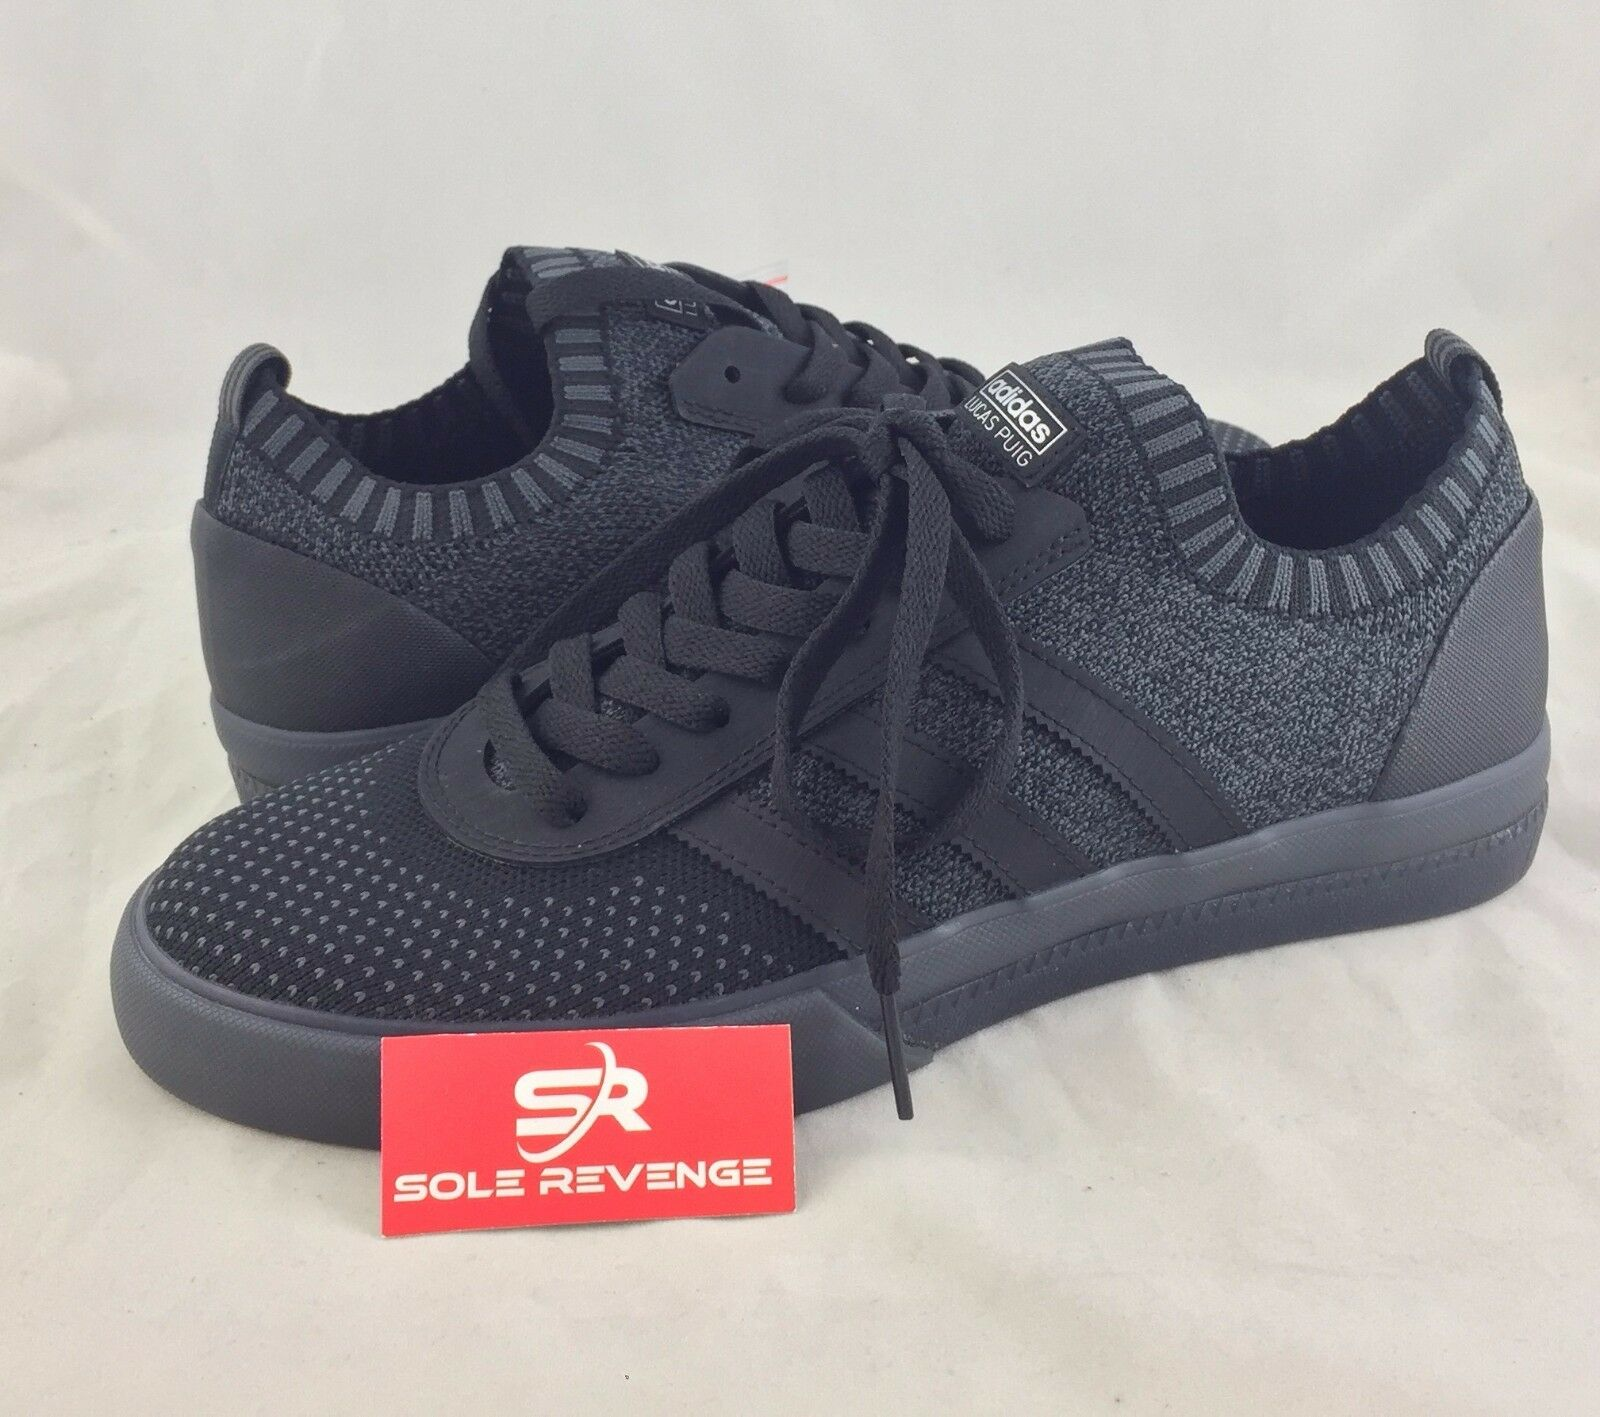 uk availability cd669 1650f NEW adidas Originals LUCAS PREMIERE PK Primeknit SHOES SHOES SHOES Noir  Shoes BB8550 s1 27ccde